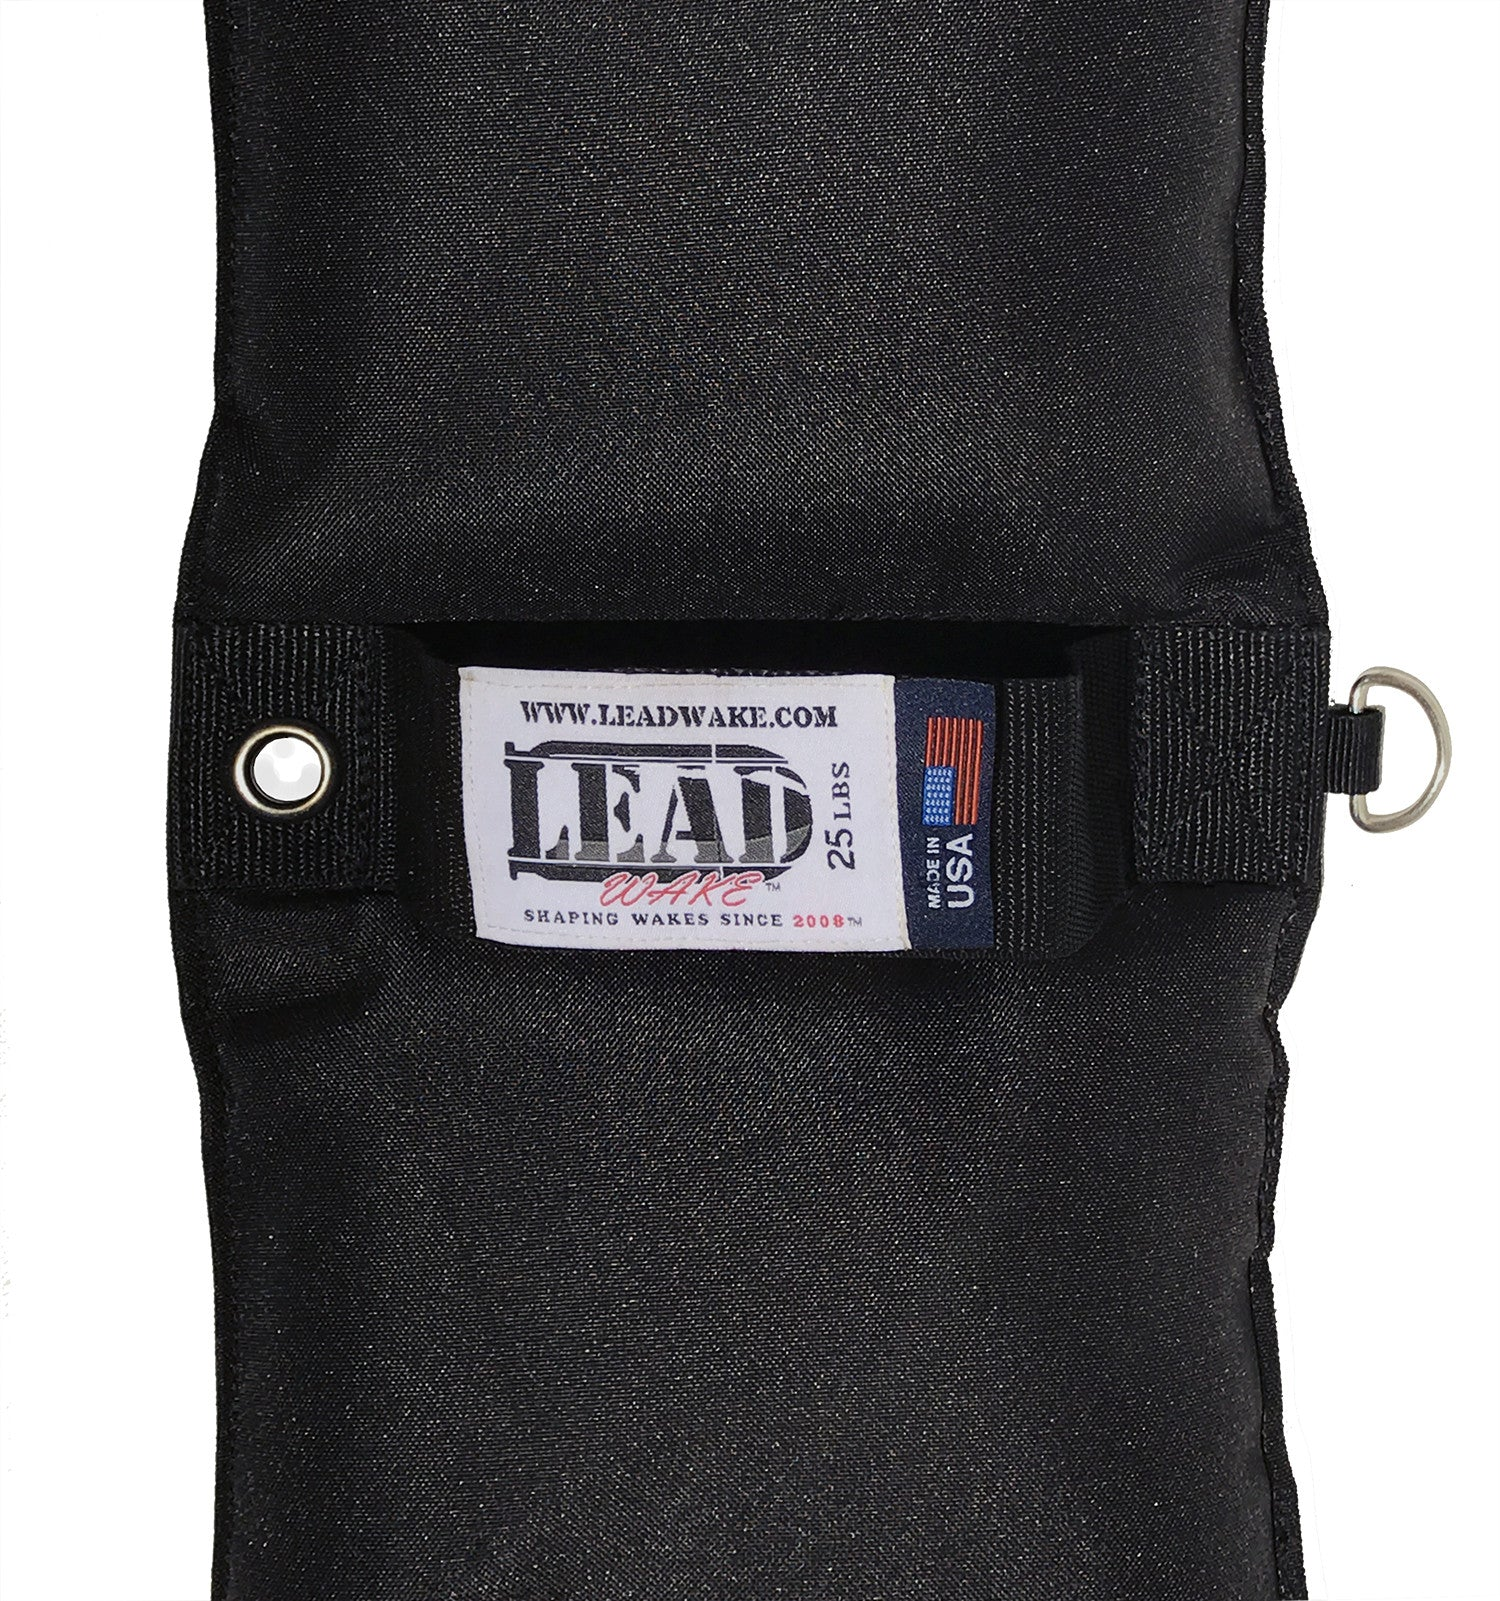 25lb Lead Wake <br>Ballast Bag